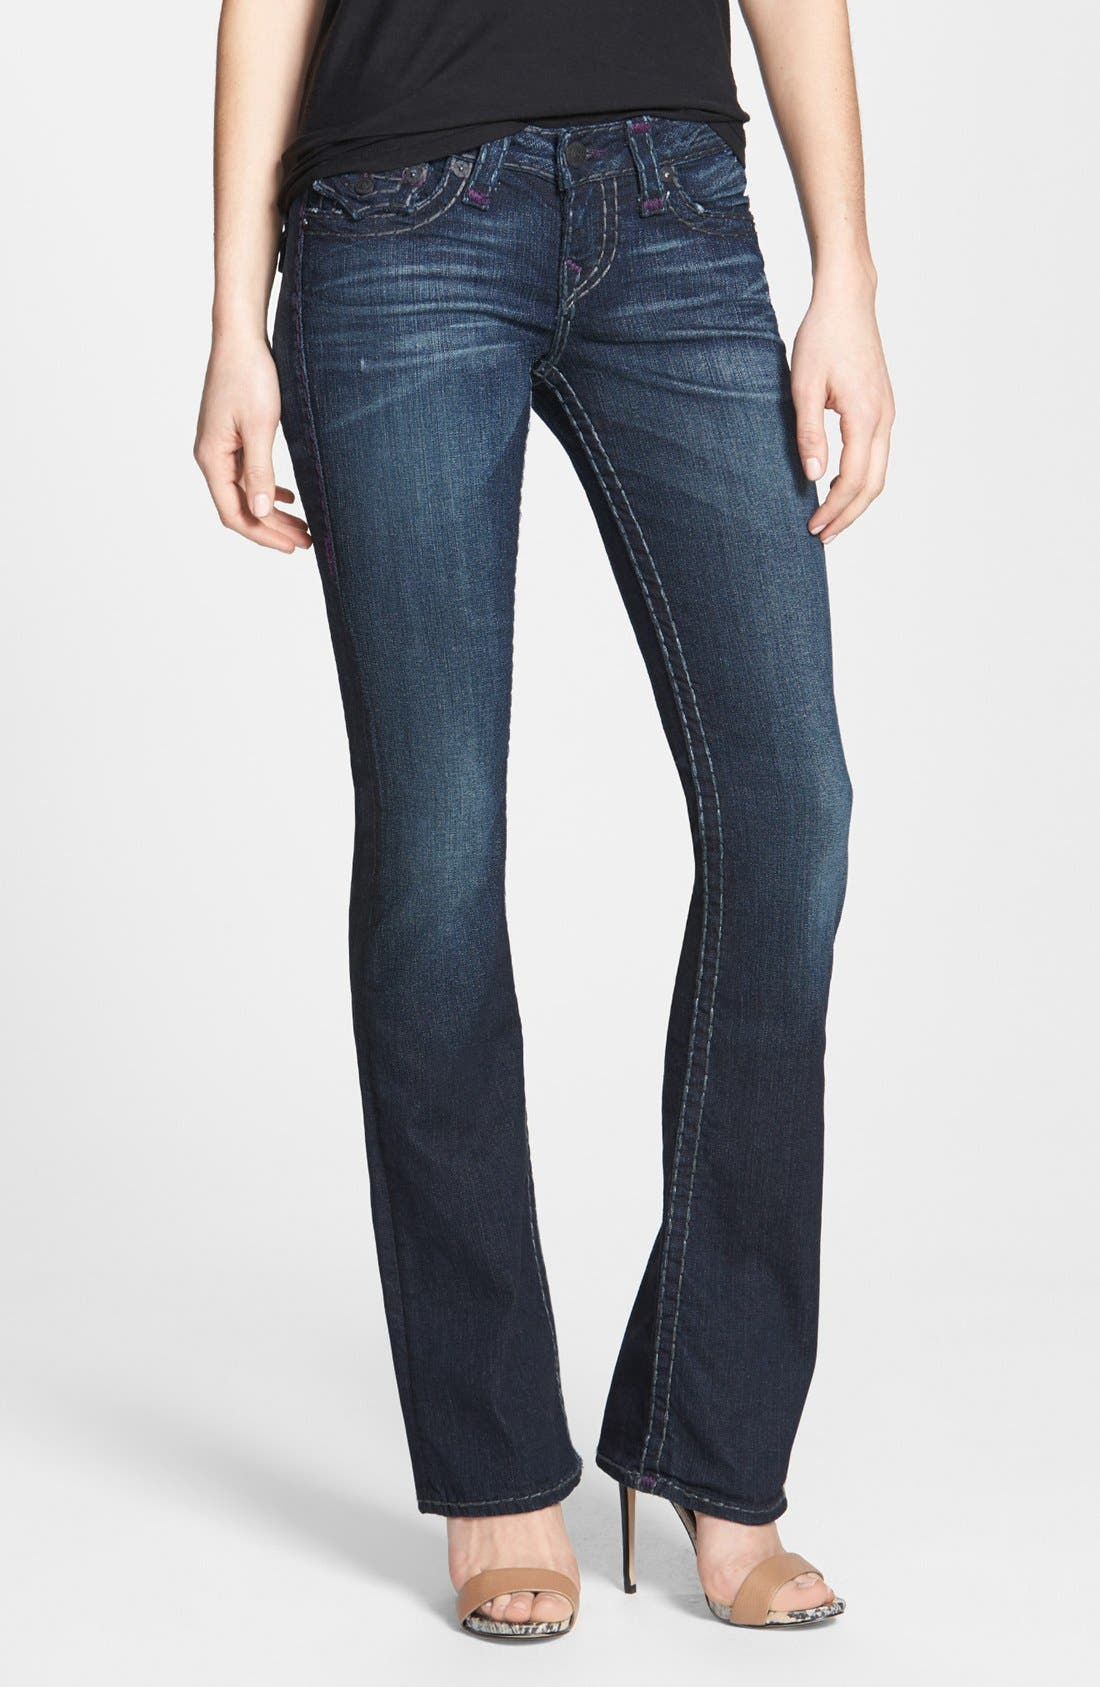 Main Image - True Religion Brand Jeans 'Becky' Bootcut Jeans (Blue Water)